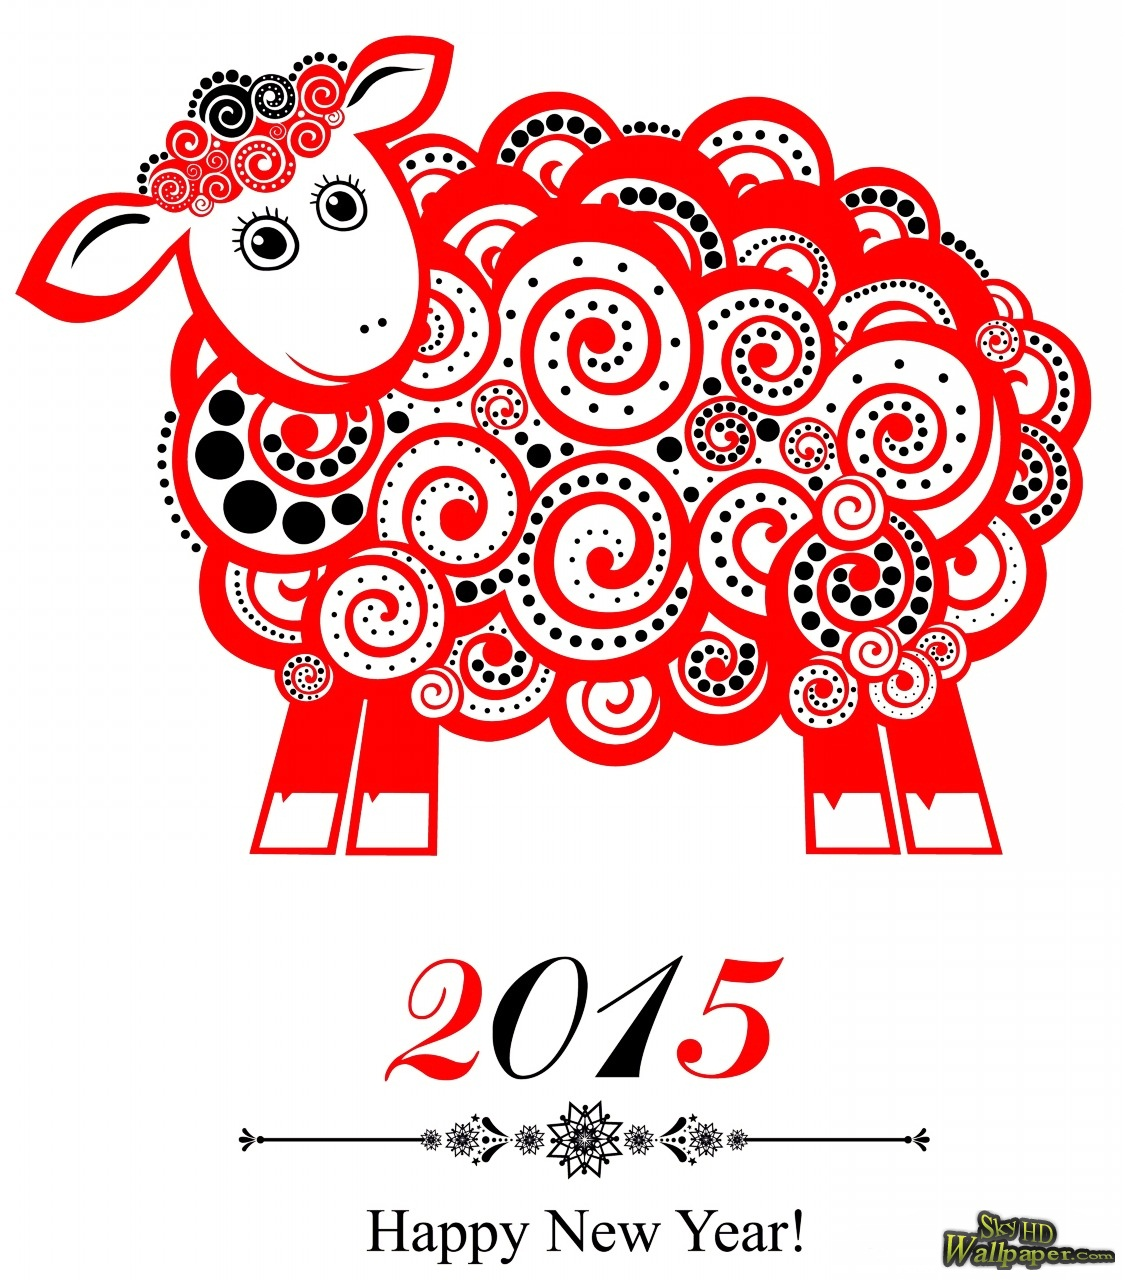 Chinese new year clipart 2015.